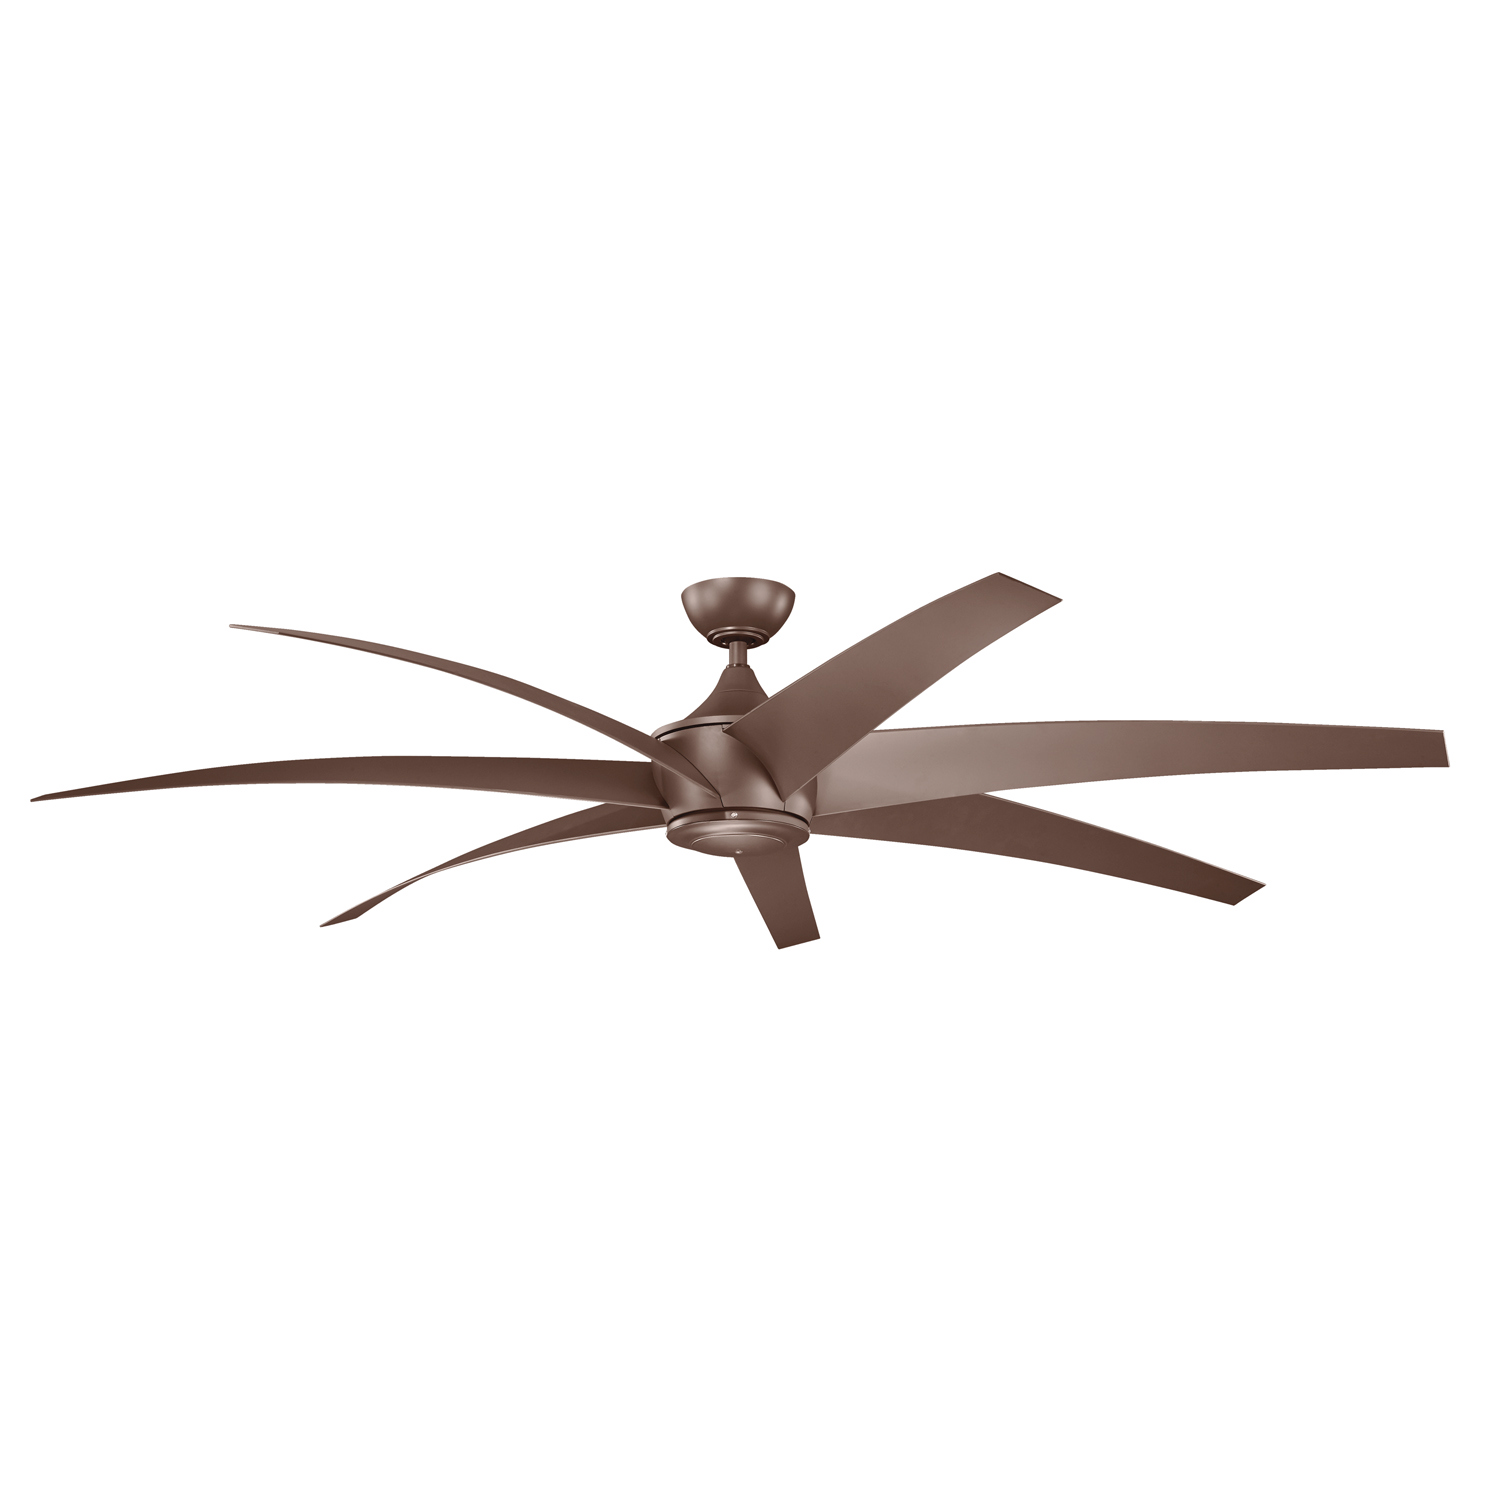 80 inchCeiling Fan from the Lehr collection by Kichler 310115CMO